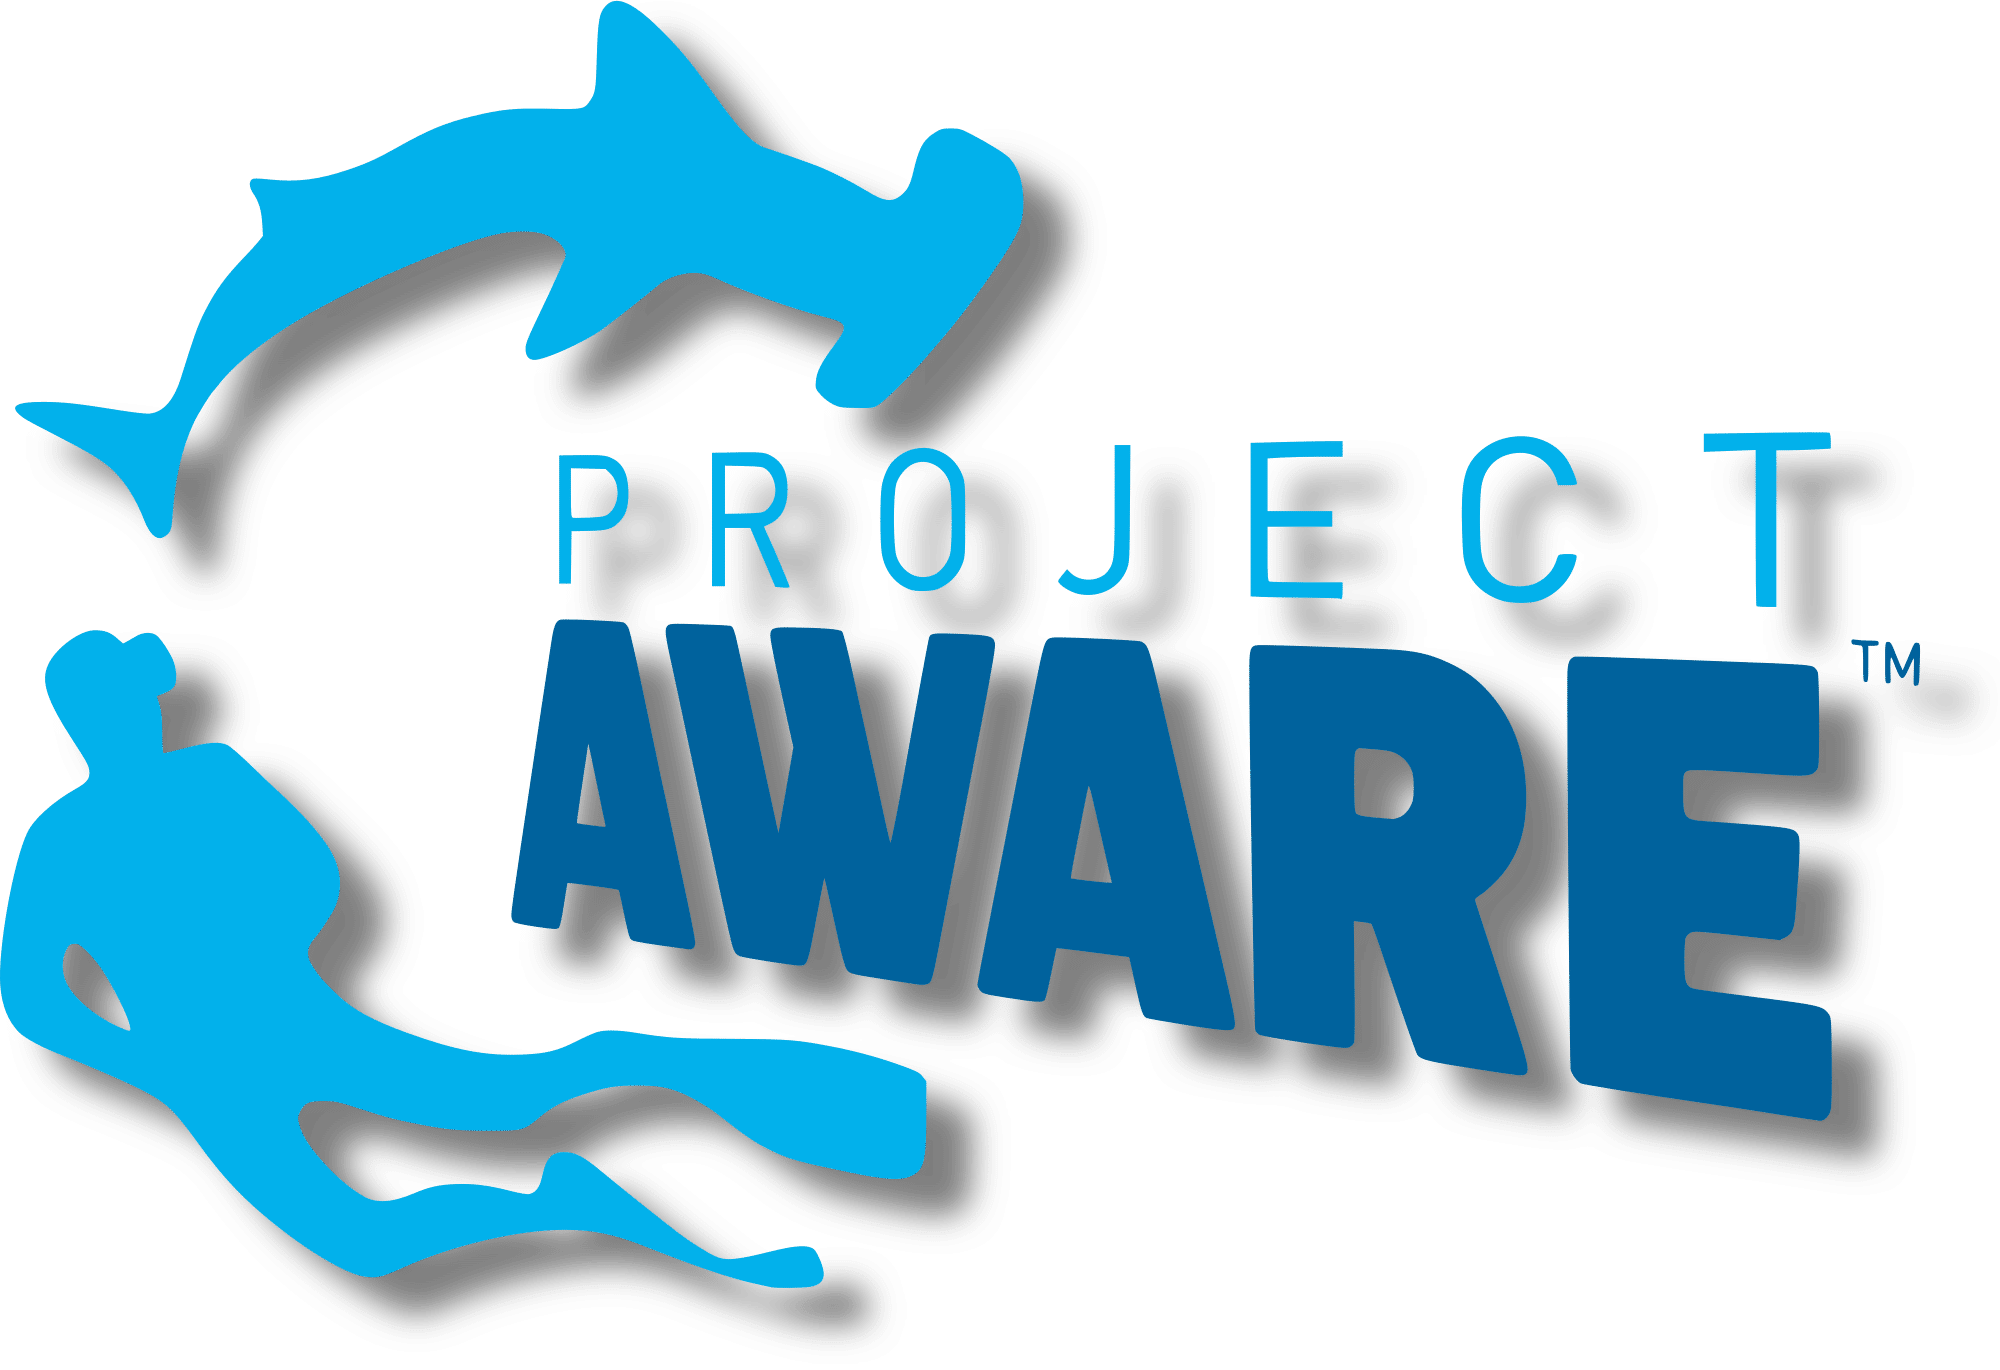 project_aware